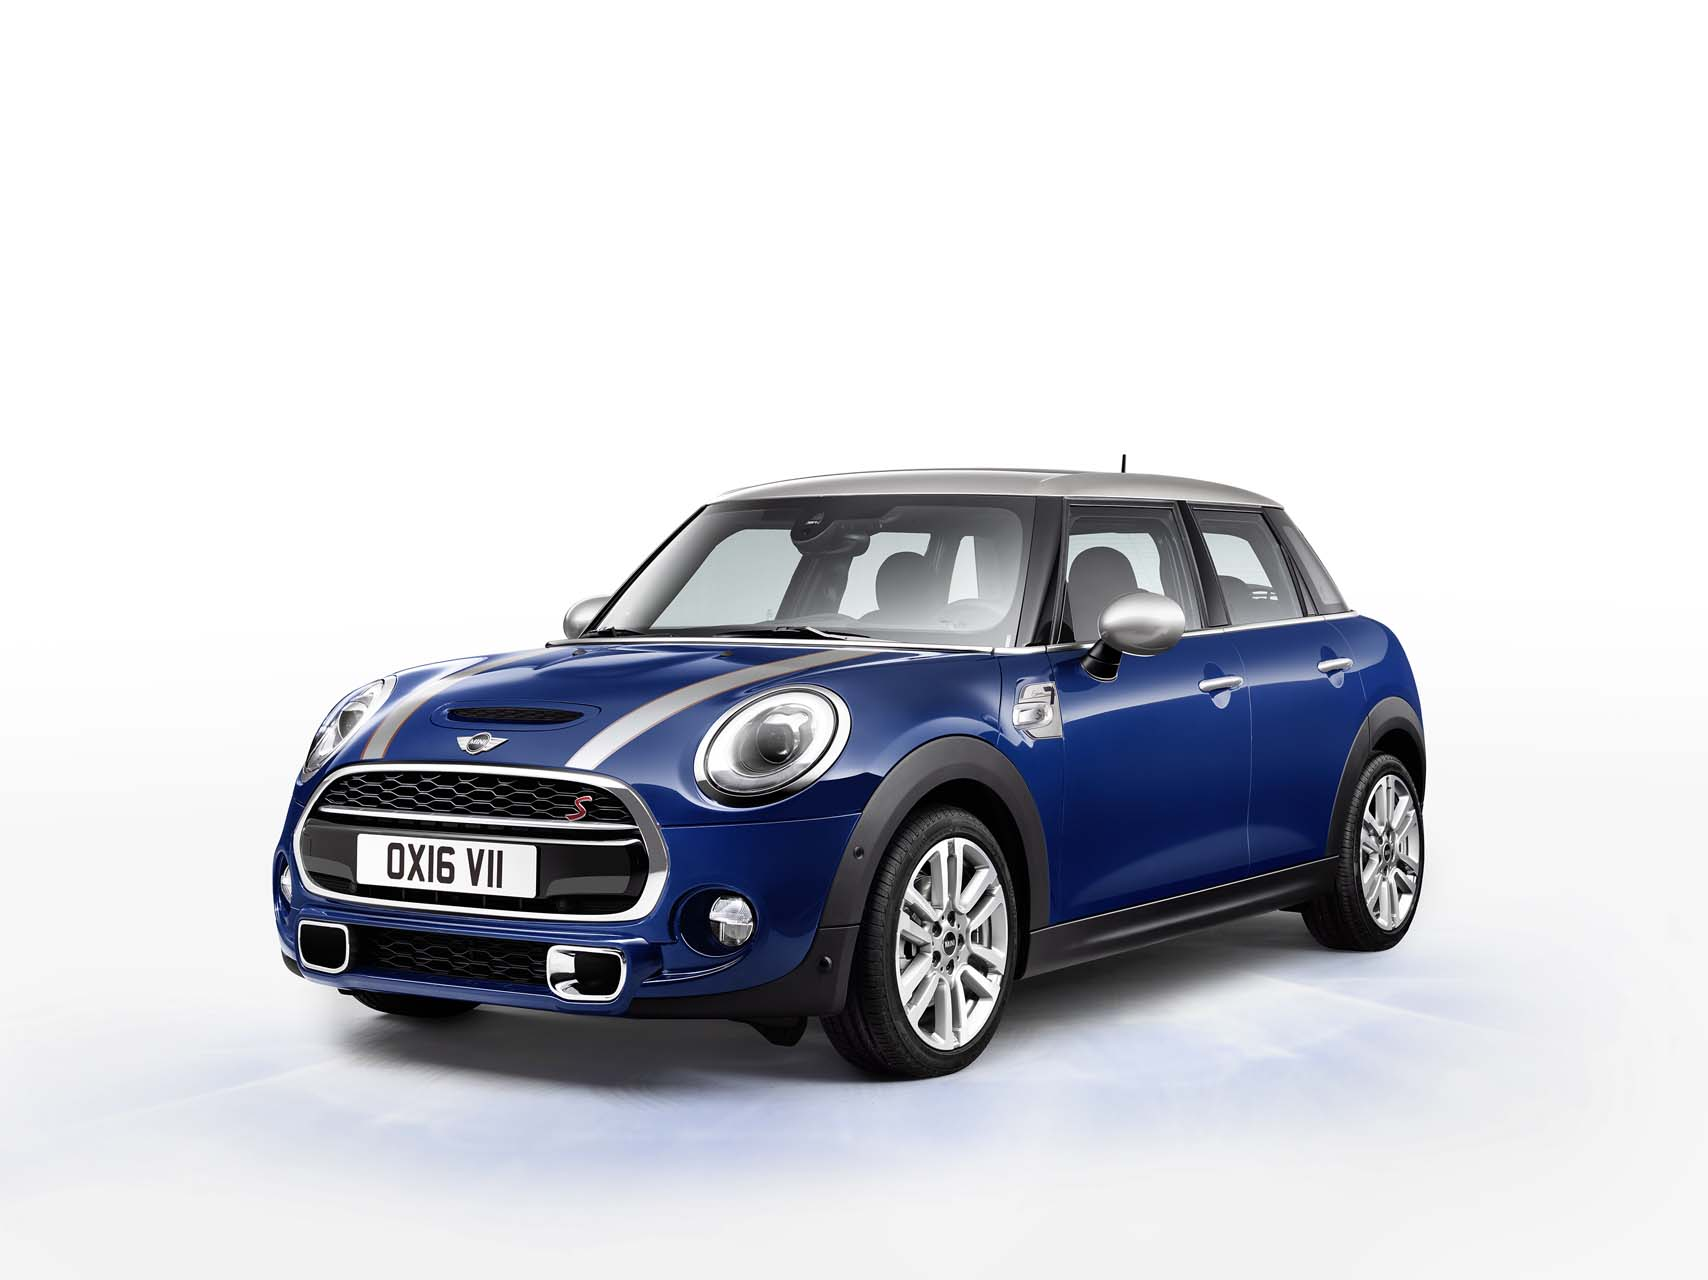 2017 mini cooper performance review the car connection. Black Bedroom Furniture Sets. Home Design Ideas